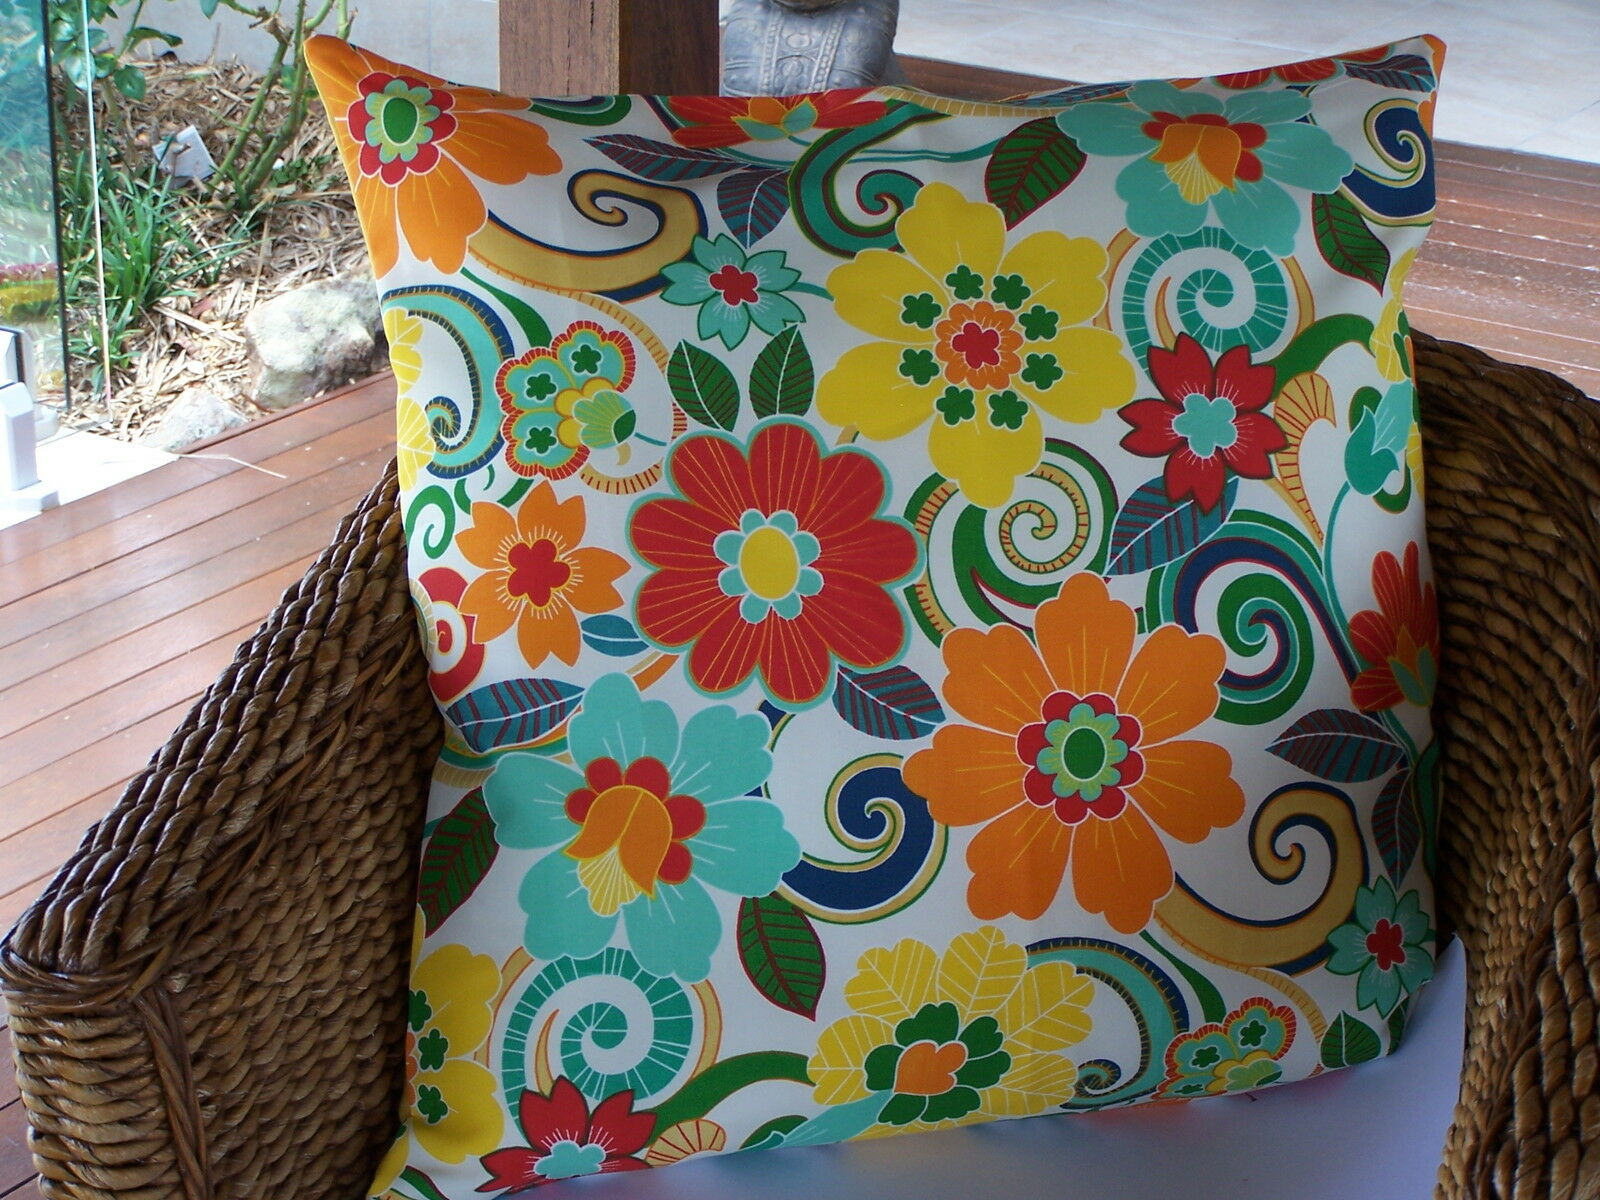 Sharons Designer Cushions